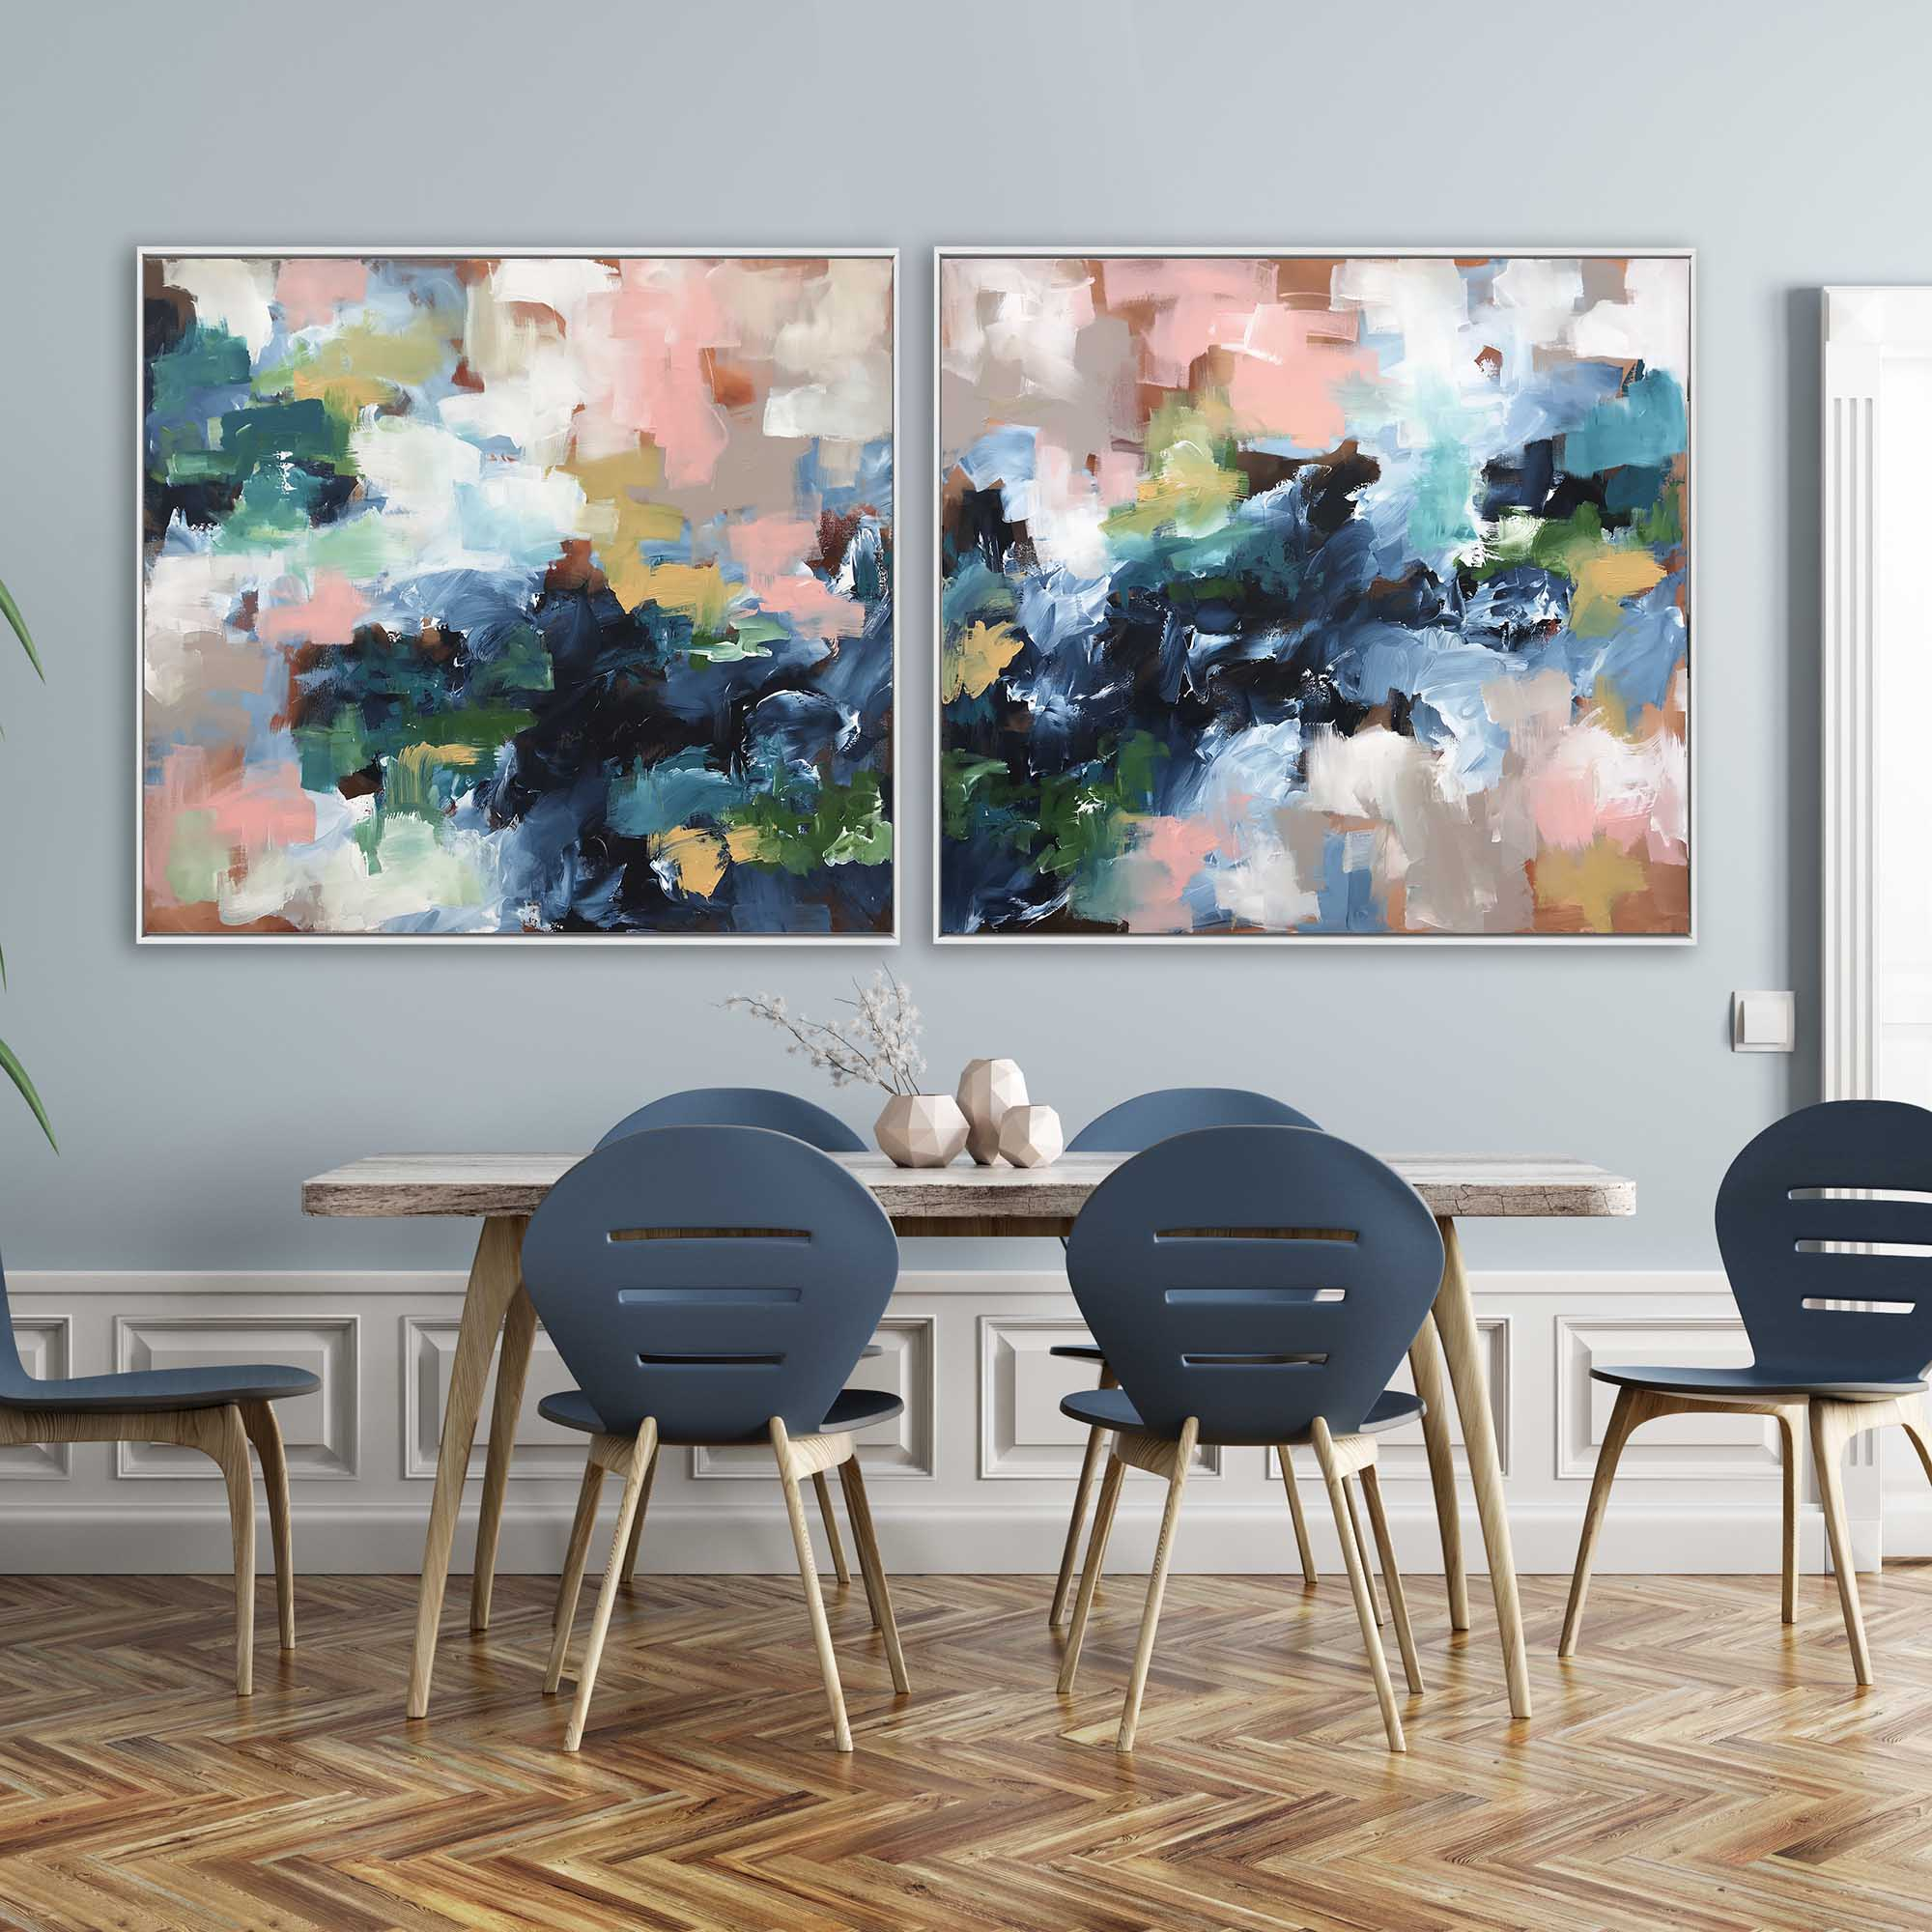 Adapting To The Unknown - 204x92 cm - Diptych Original Painting